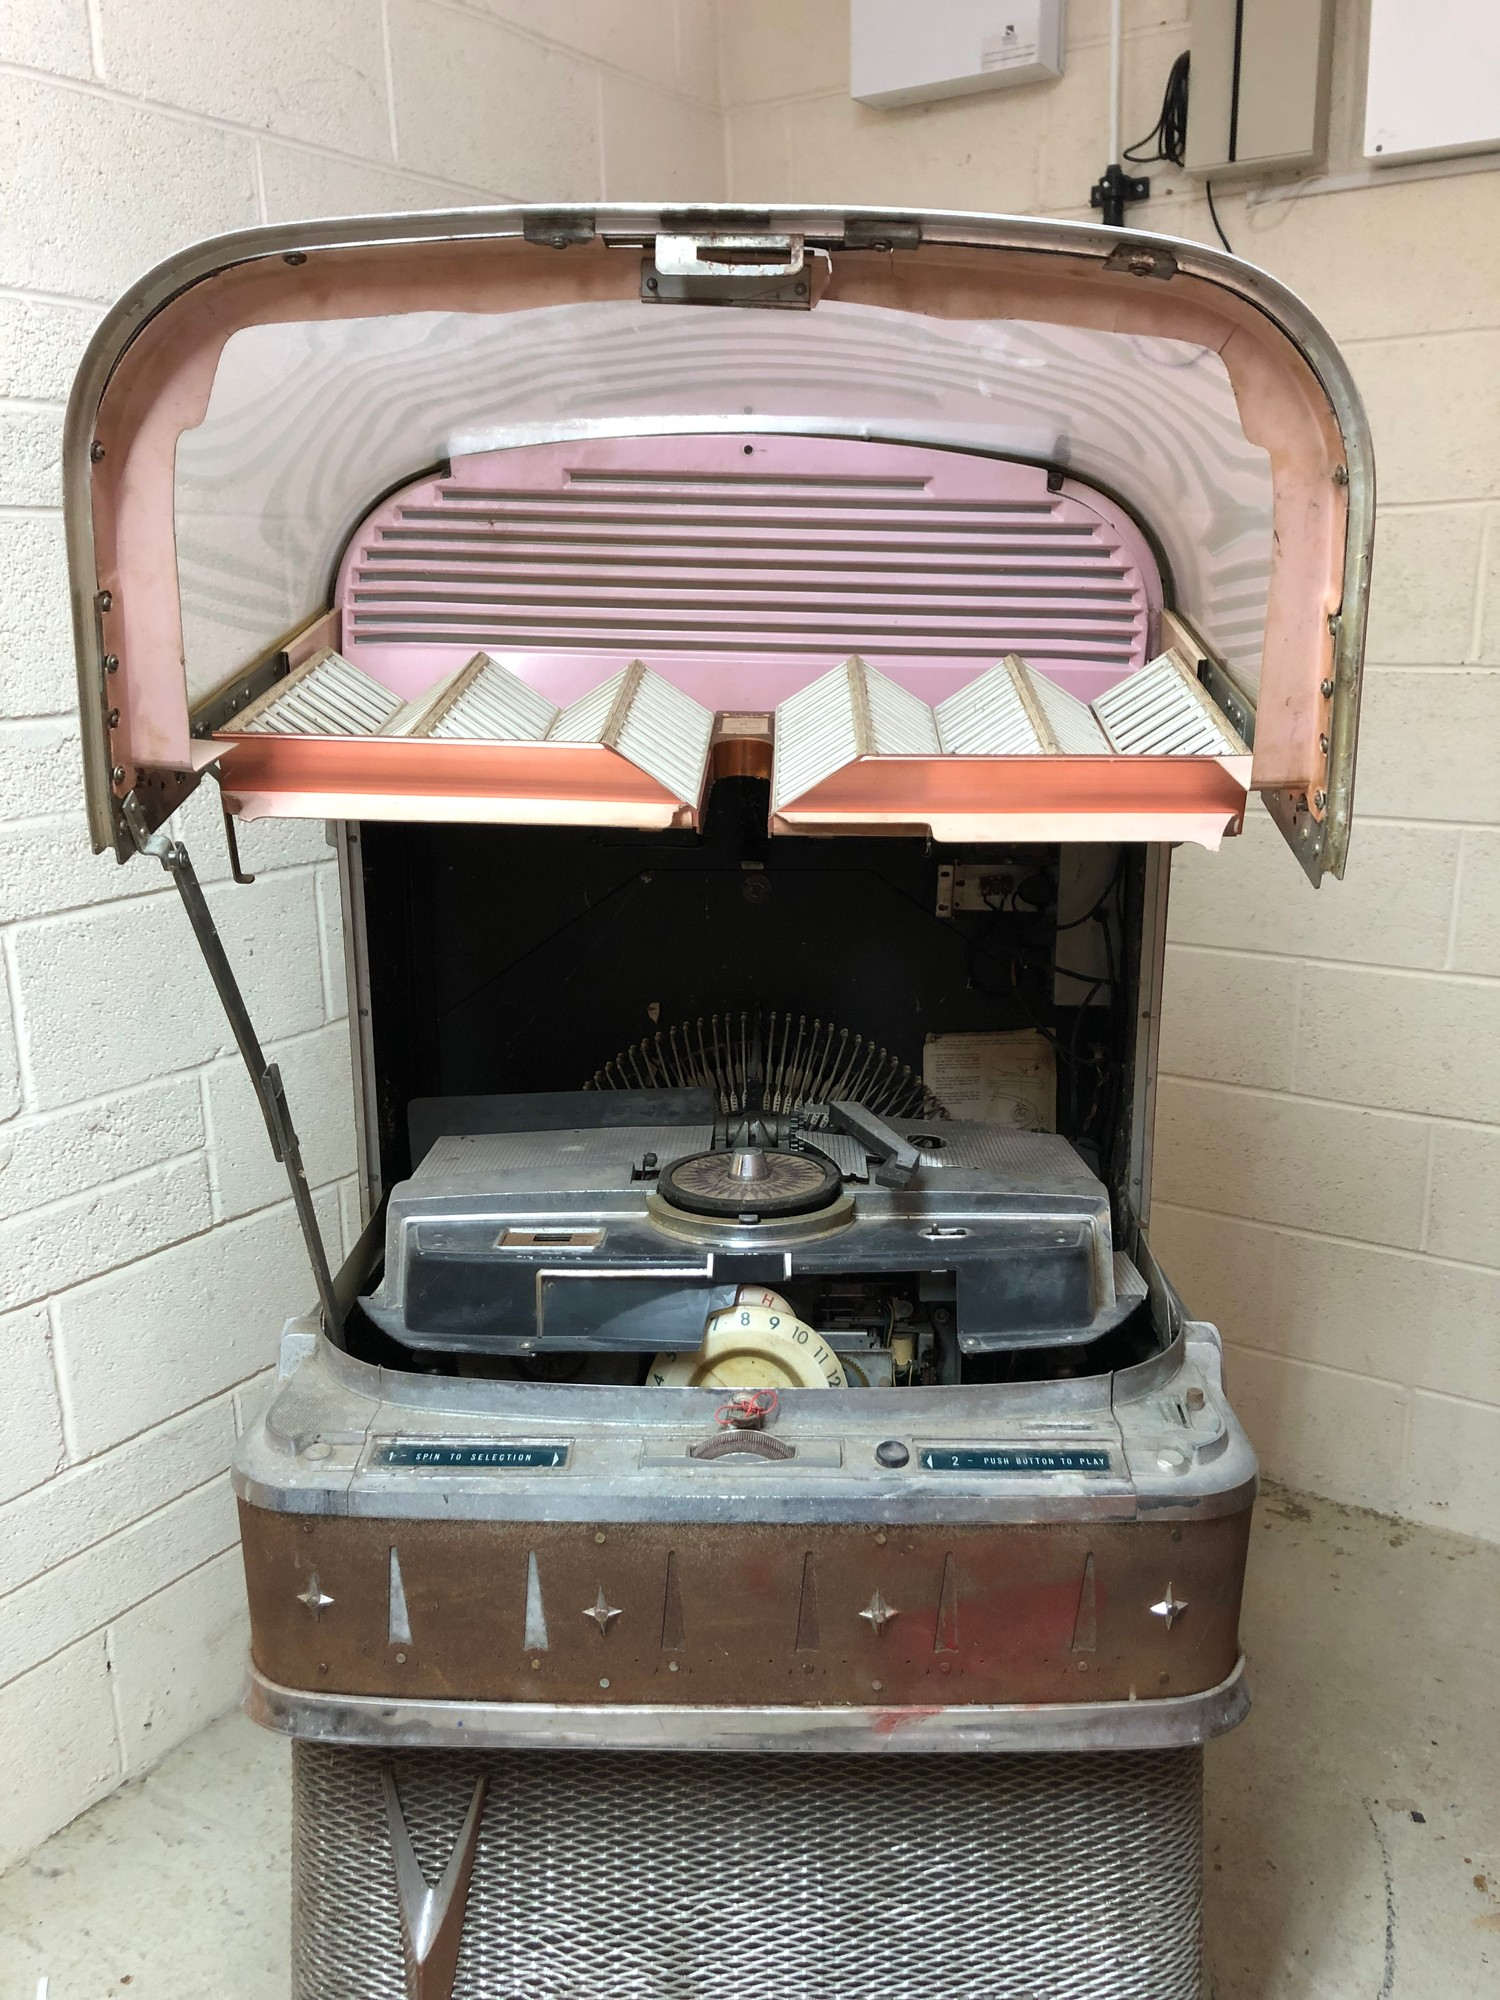 """Rare 1950s Bal-AMi 200 Jukebox in """"Barn Find"""" condition and in need of complete restoration, - Image 16 of 27"""